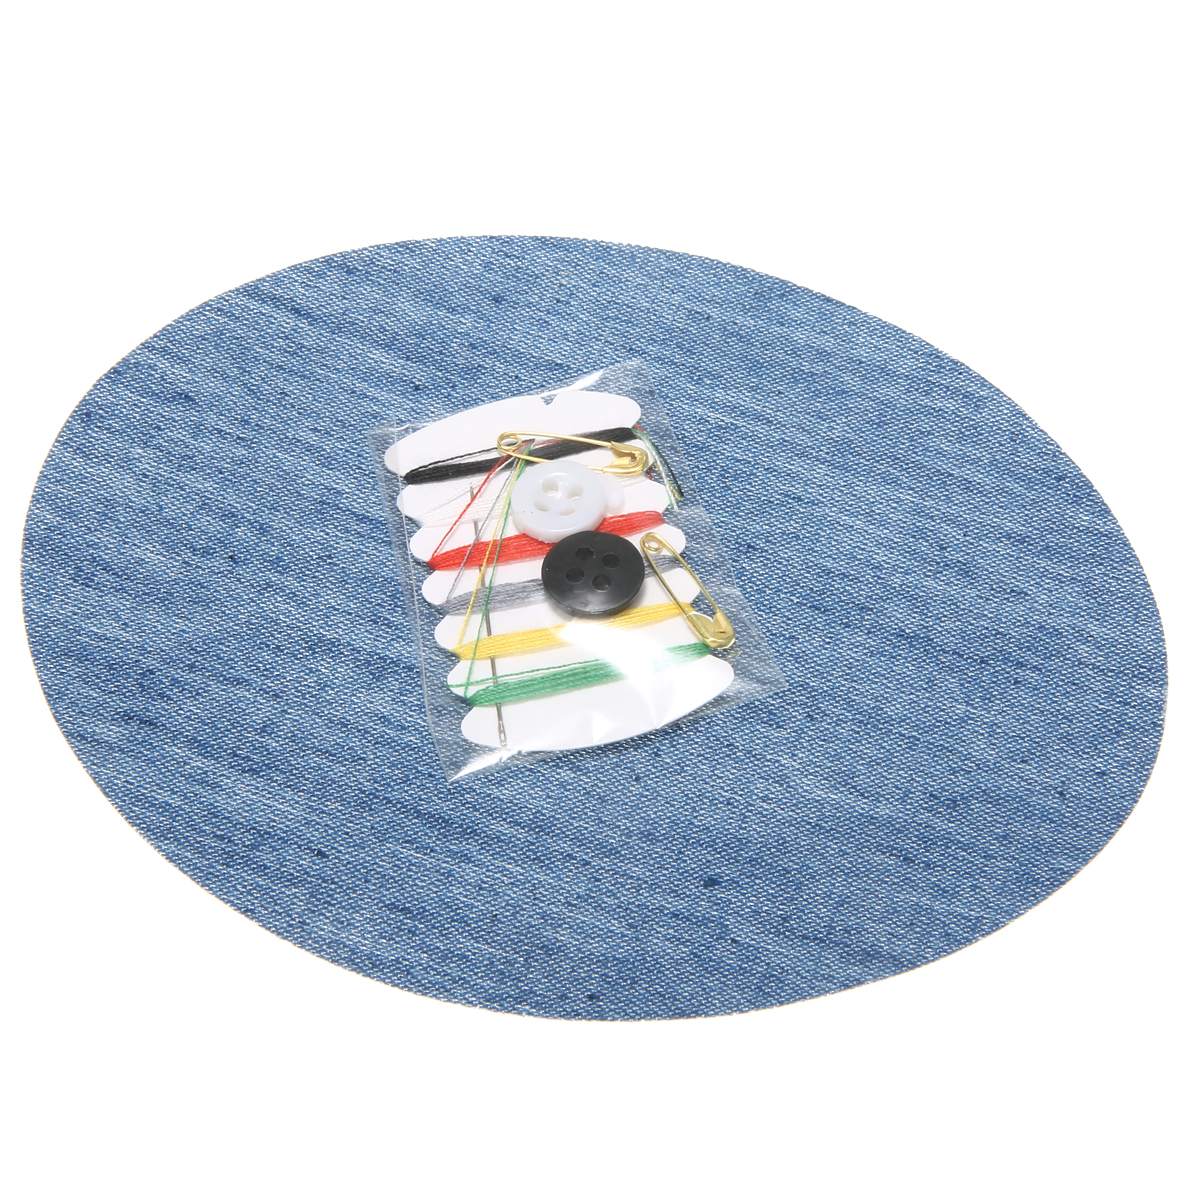 20pcs Iron On Denim Patches Sewing Kit For Mending Embellishing Jeans Bag Hat Repair Decor Design in Patches from Home Garden